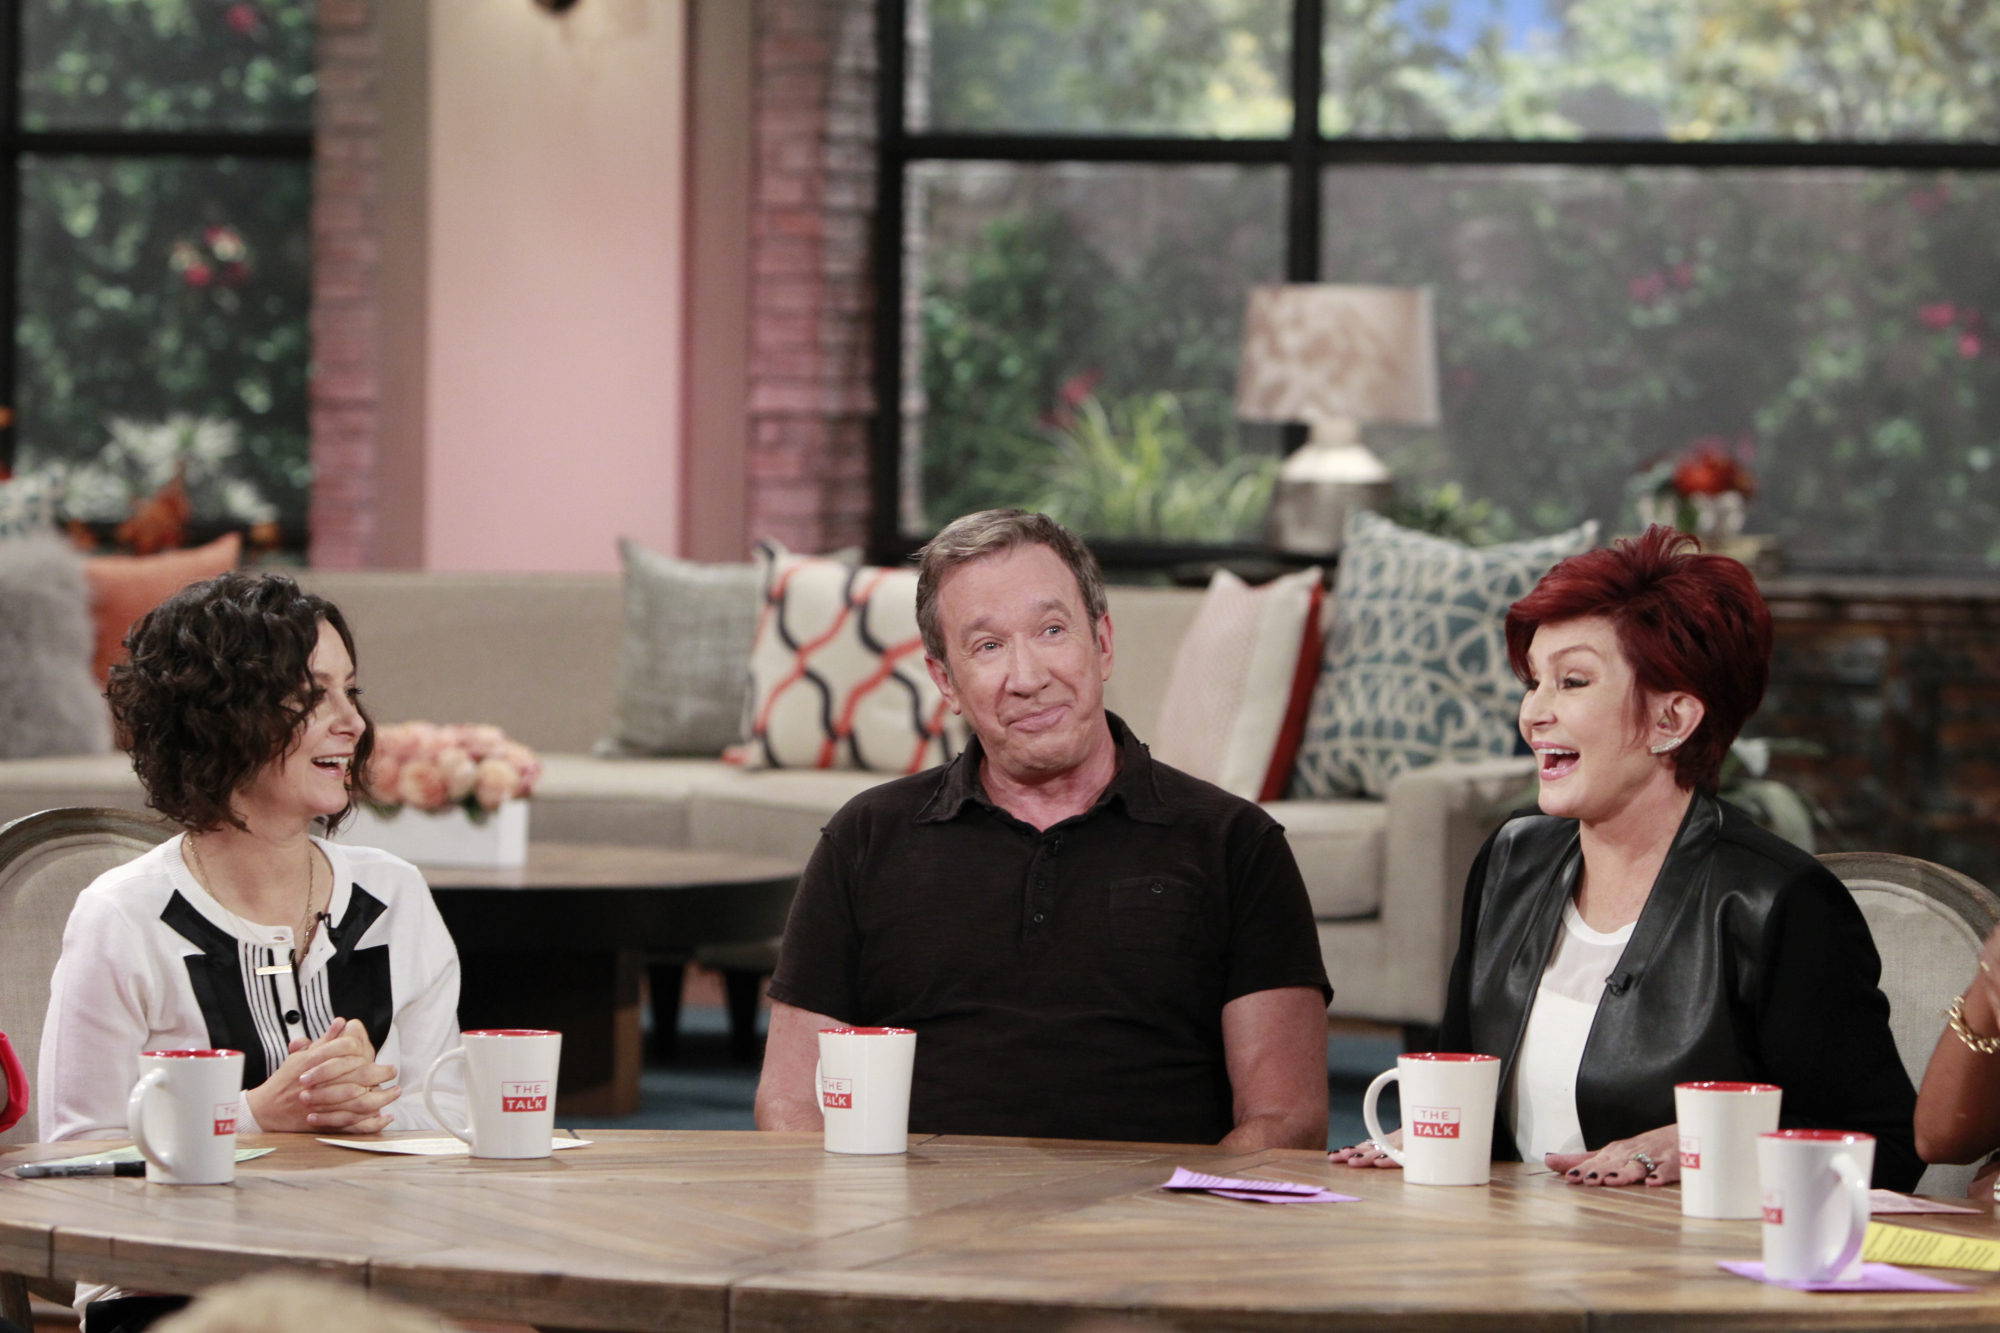 10. Catching up with Tim Allen.